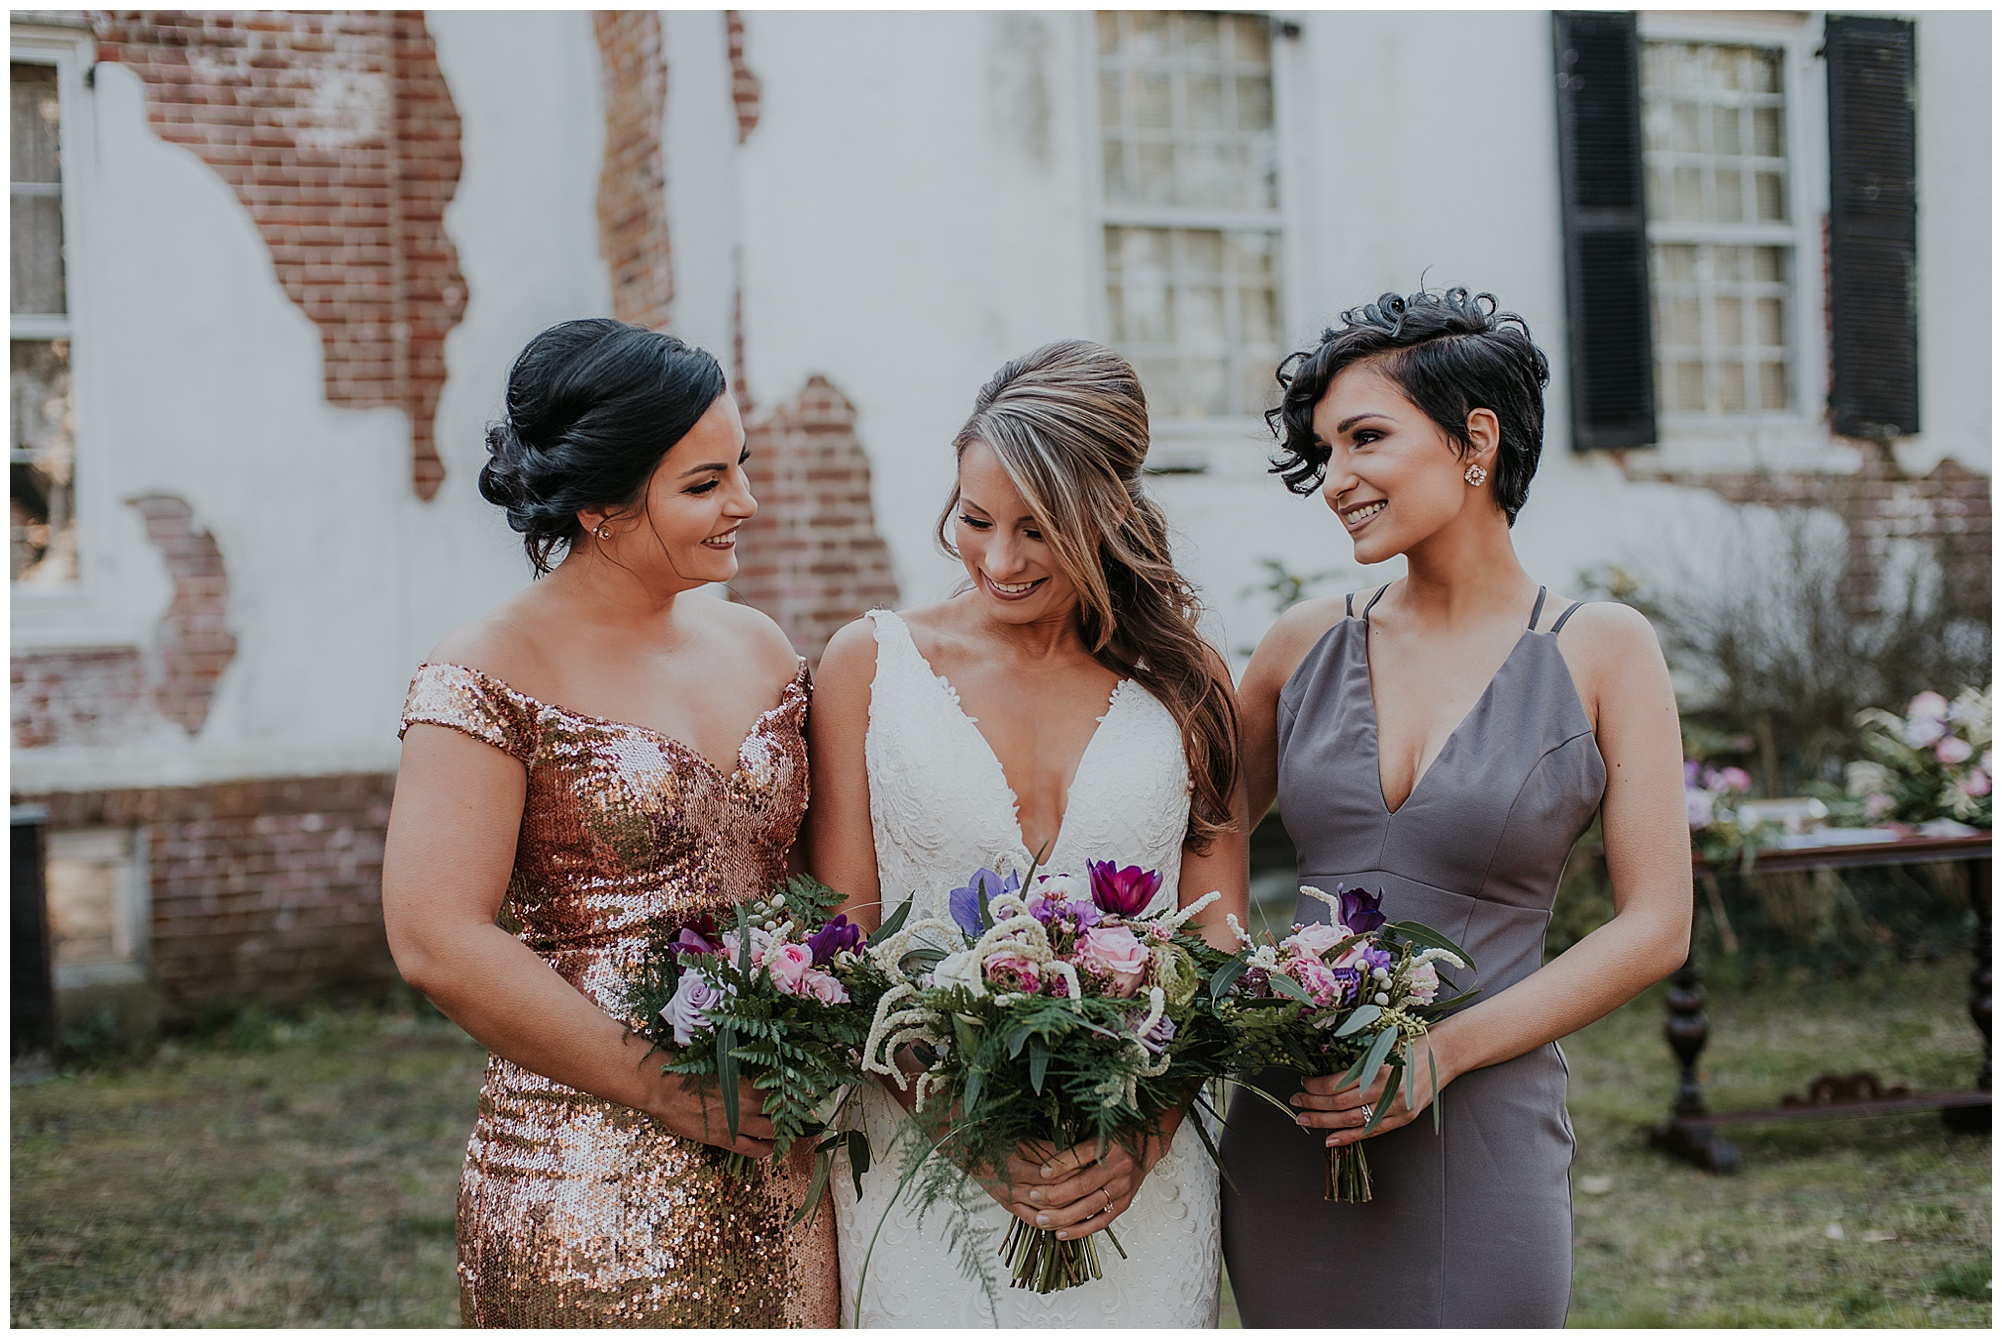 glamorous and boho style wedding theme at chanceford hall bed and breakfast. maryland wedding now featured on my eastern shore wedding.